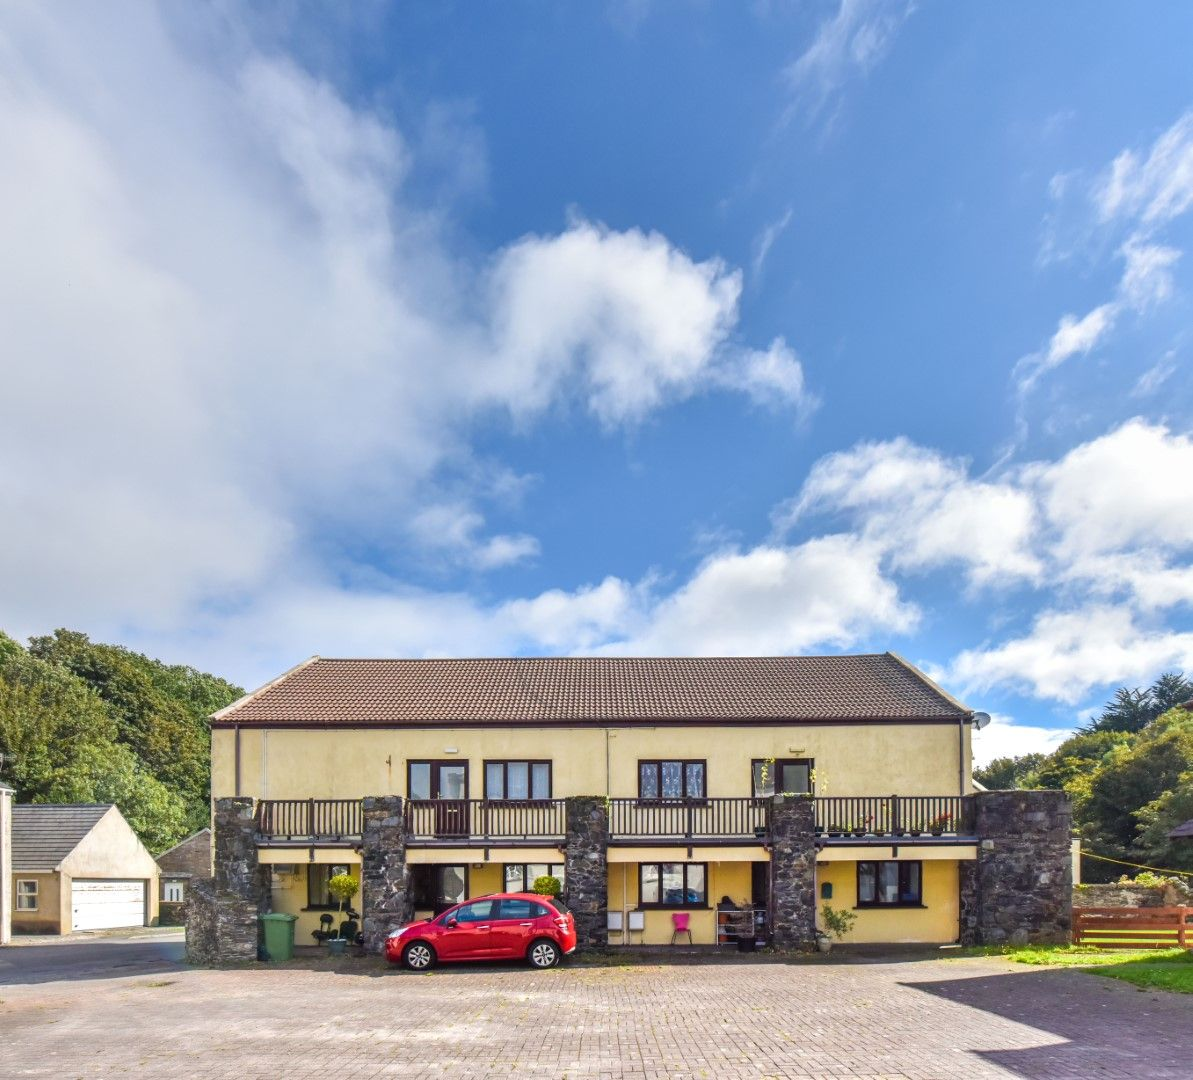 8 bedroom flat flat/apartment For Sale in Laxey - Photograph 1